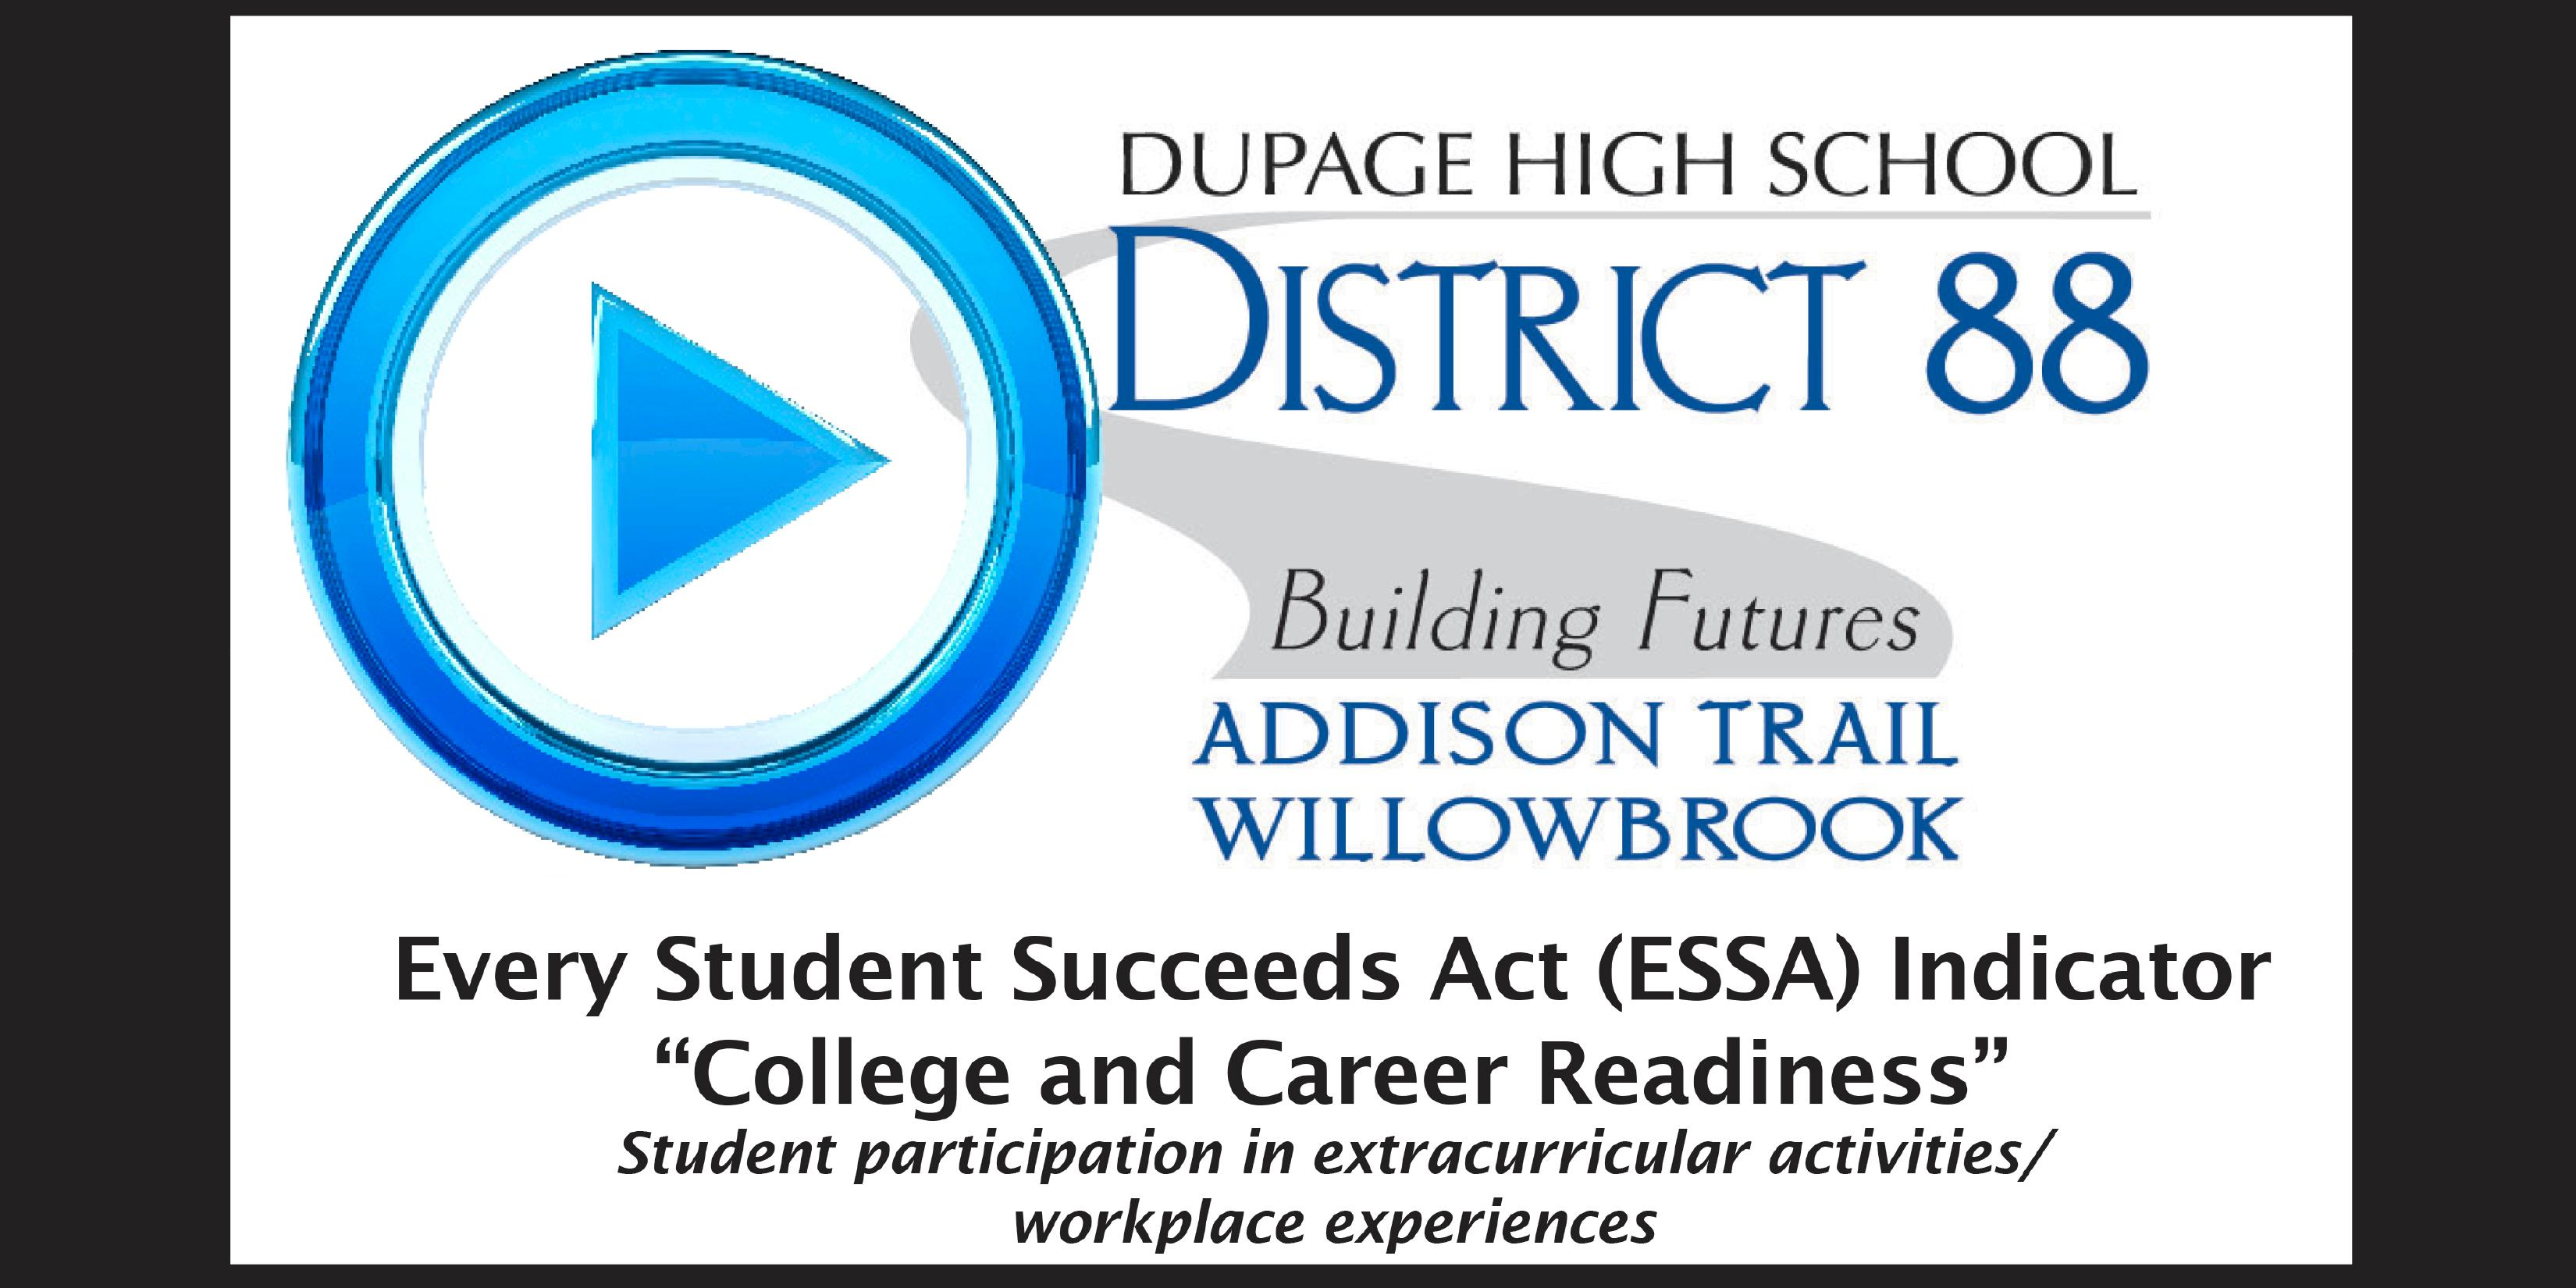 District 88 shares information about the Every Student Succeeds Act 'College and Career Readiness' Indicator